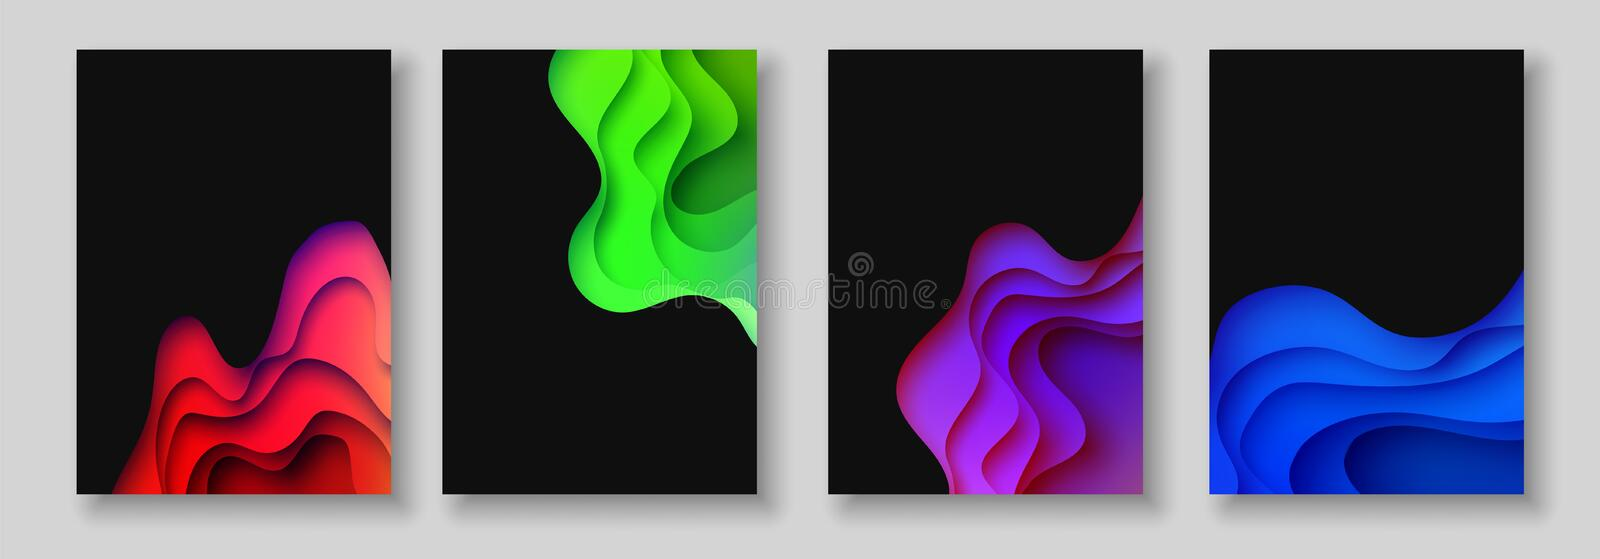 A4 abstract color 3d paper art illustration set. Contrast colors. Vector design layout for banners, presentations, flyer royalty free illustration